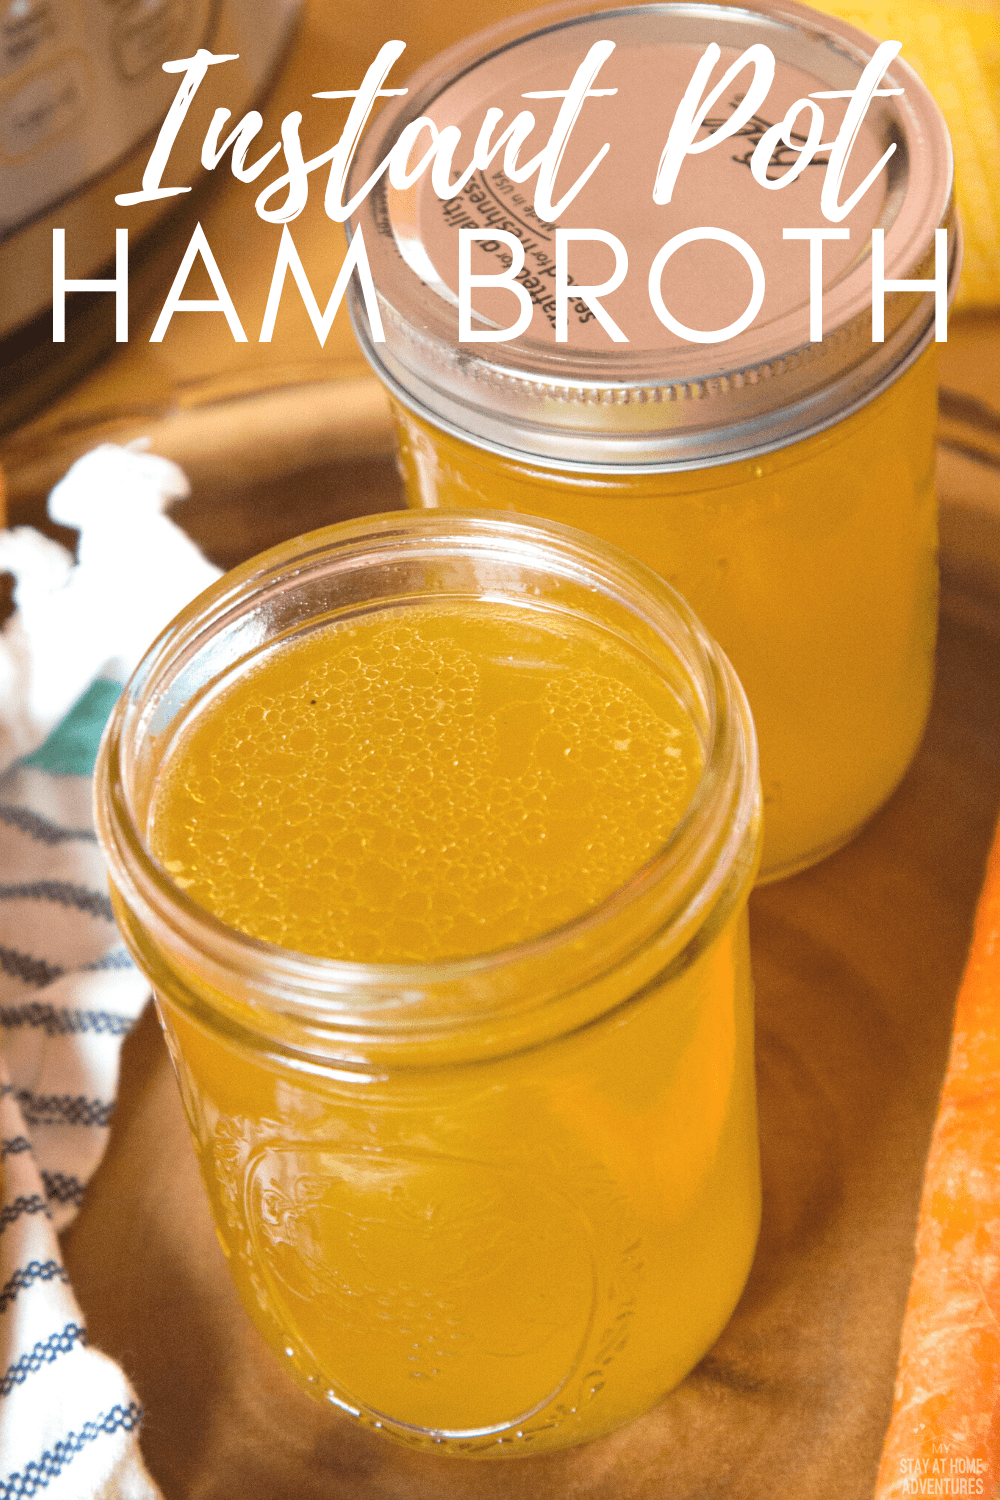 Learn how to make this simple, yet delicious ham broth using your Instant Pot or any other electric pressure cooker. This recipe is also freezer friendly. #instantpot #broth #hambroth via @mystayathome